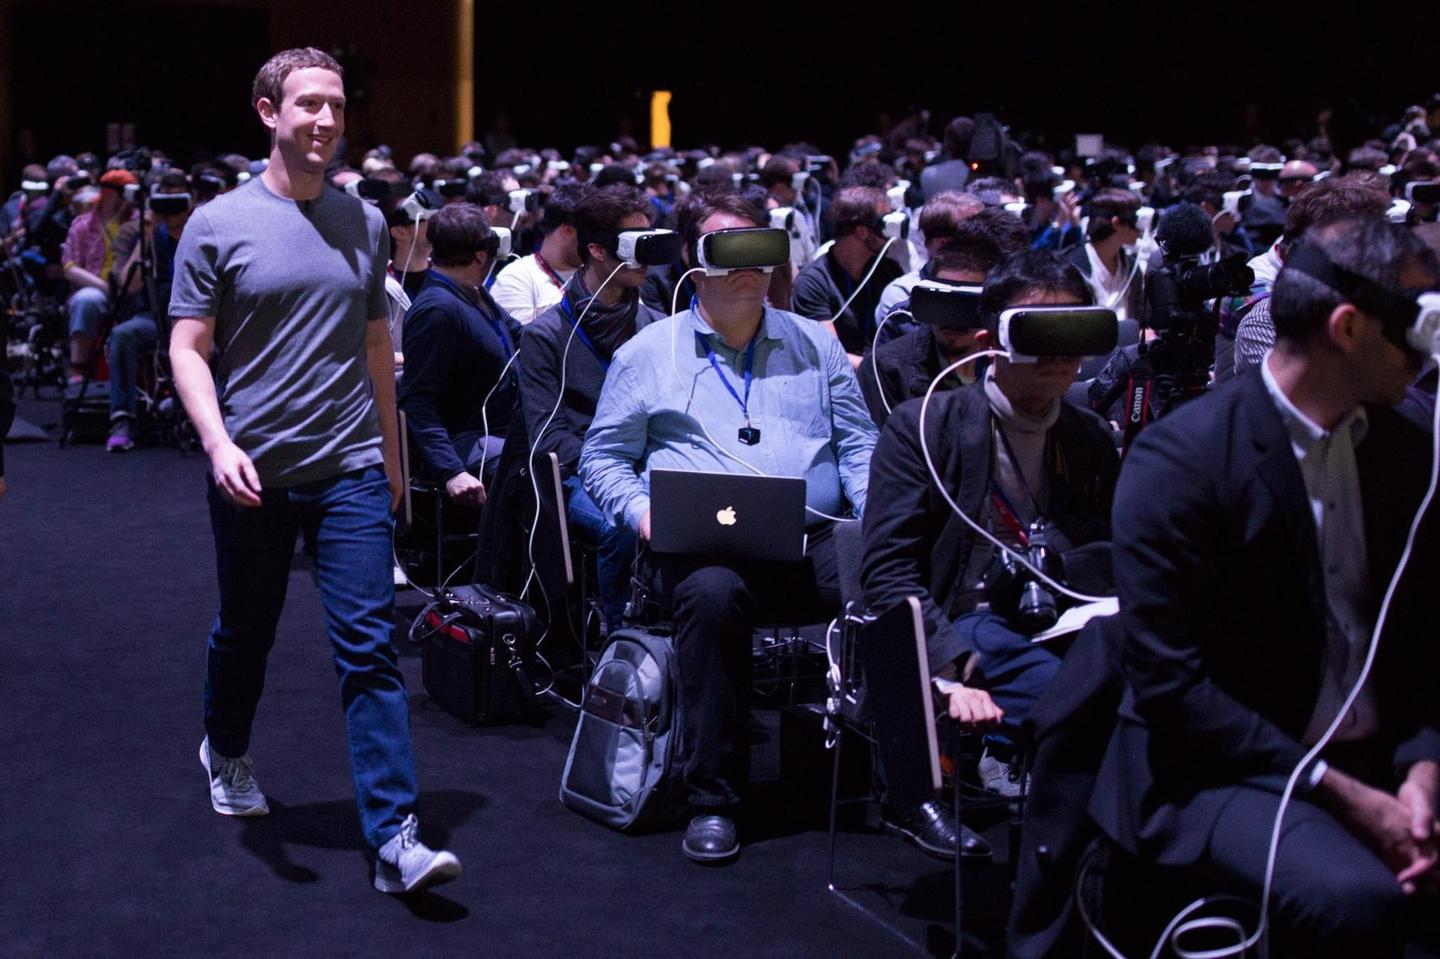 That Facebook is betting big on immersive video and virtual reality isn't exactly a secret. Mark Zuckerberg takes to the stage at Mobile World Congress in Spain earlier this year